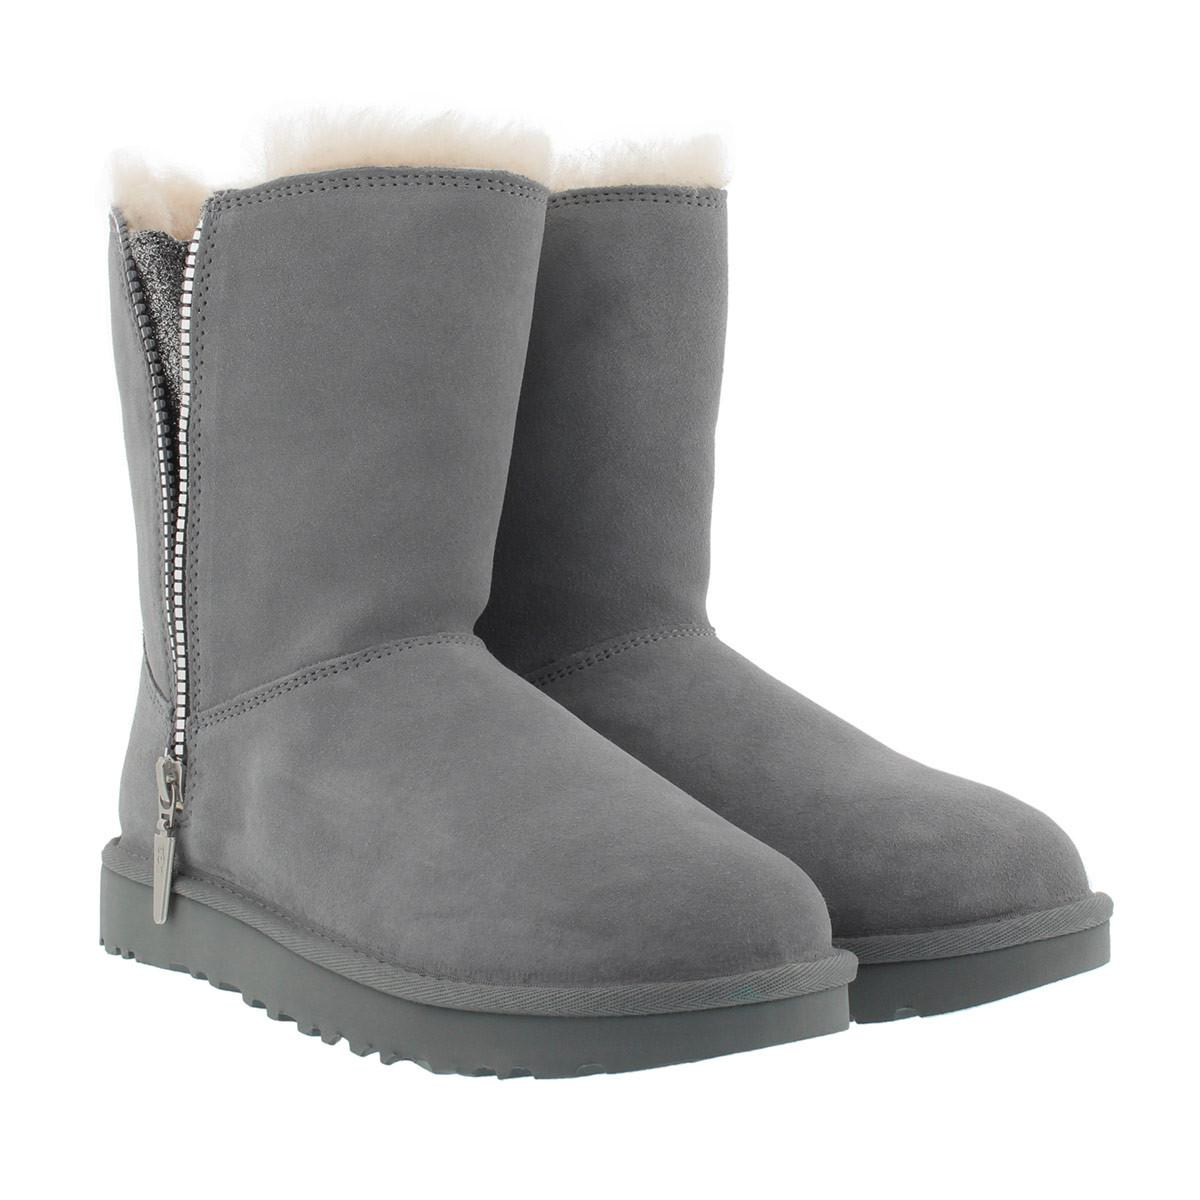 75be78e2761 UGG W Marice Geyser in Metallic - Lyst